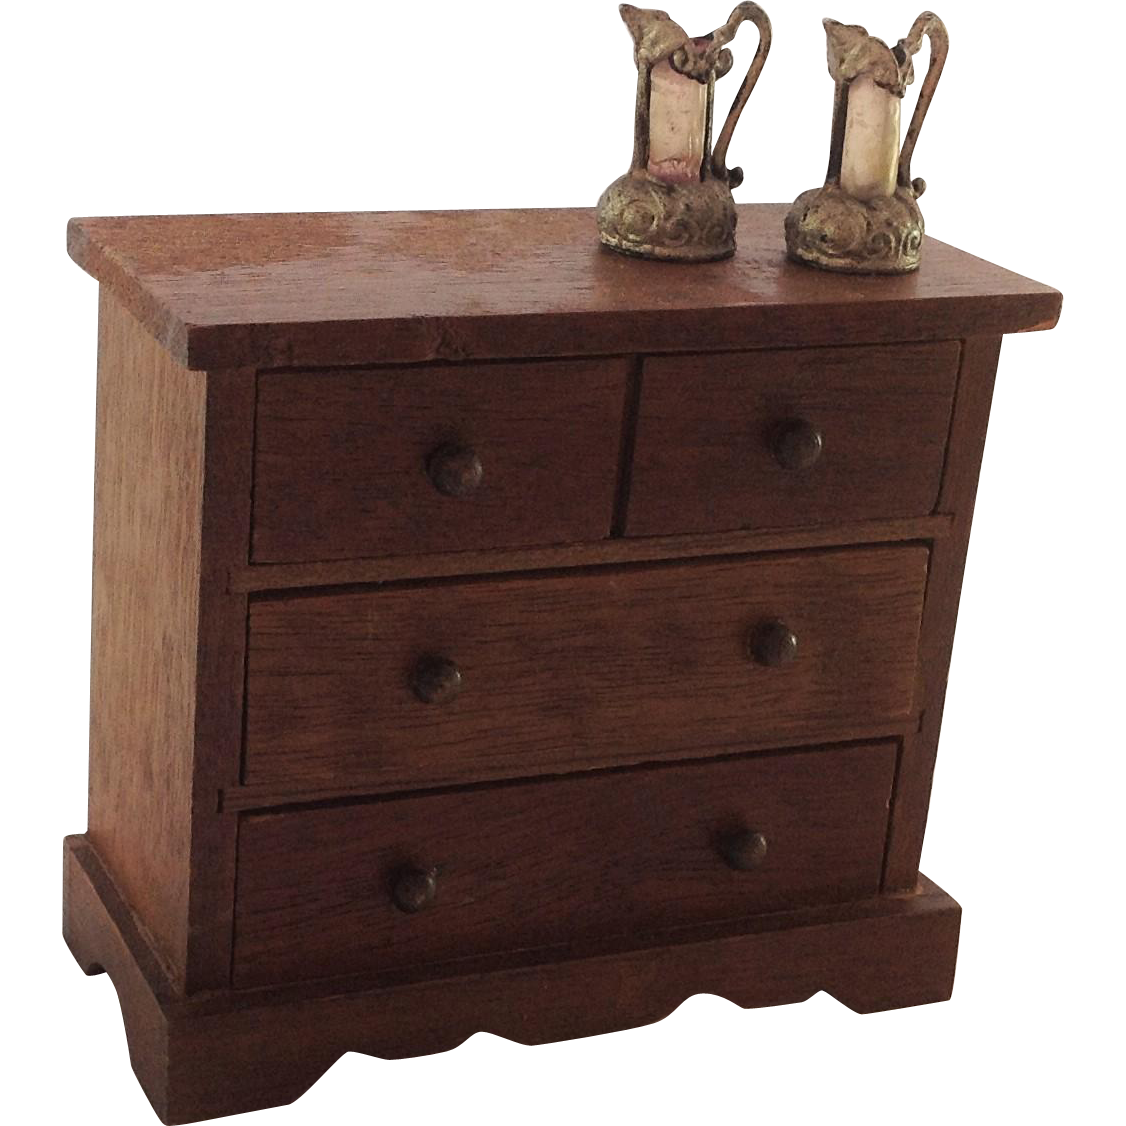 Nice Old Rustic Miniature Chest Of Drawers For Doll House